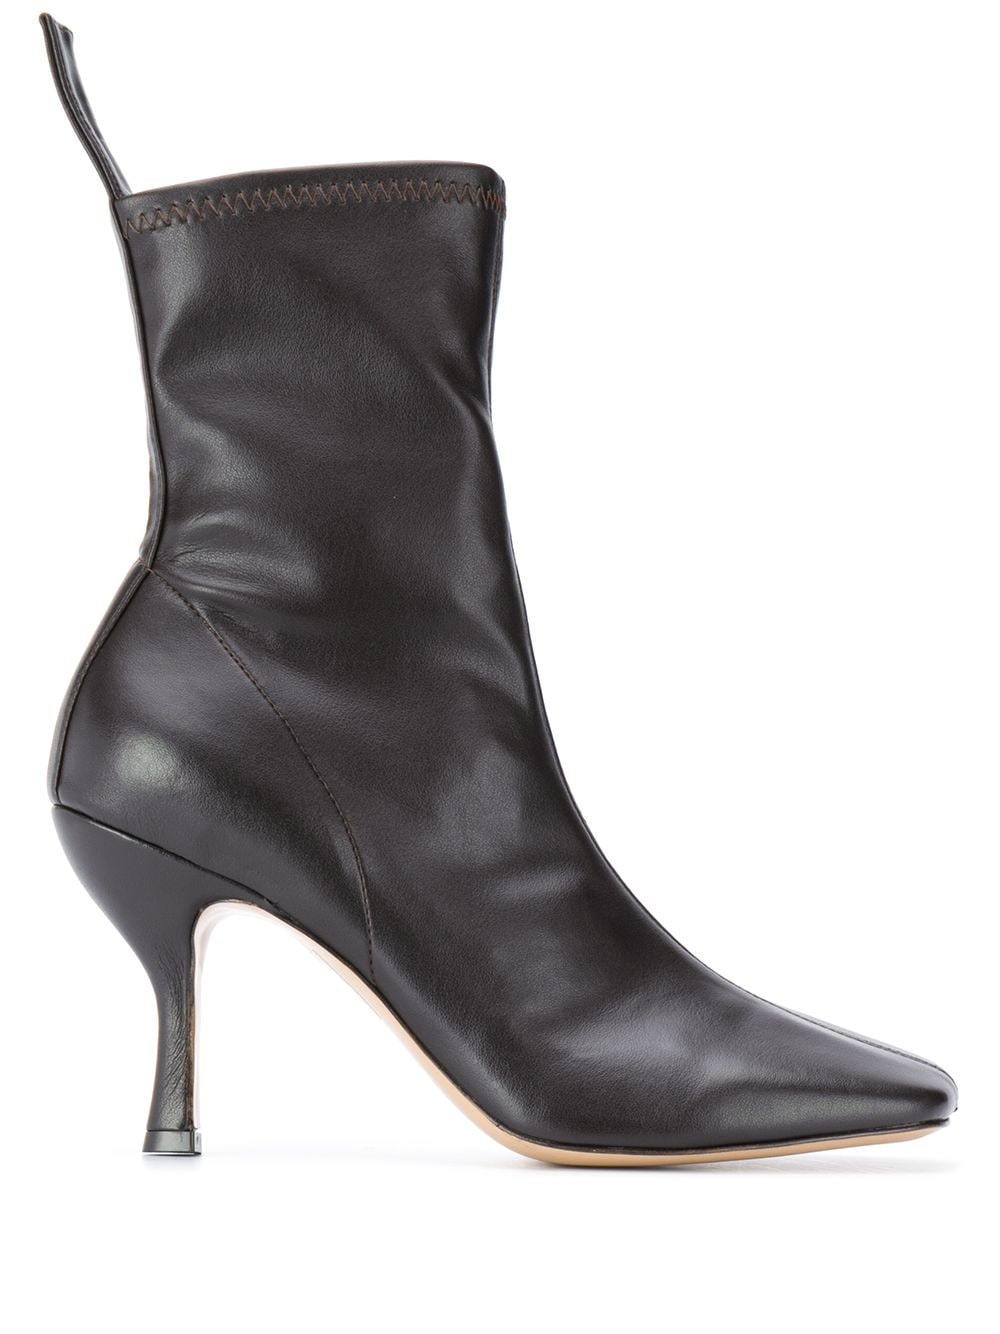 SORAYA 80 MM STRETCH BOOT